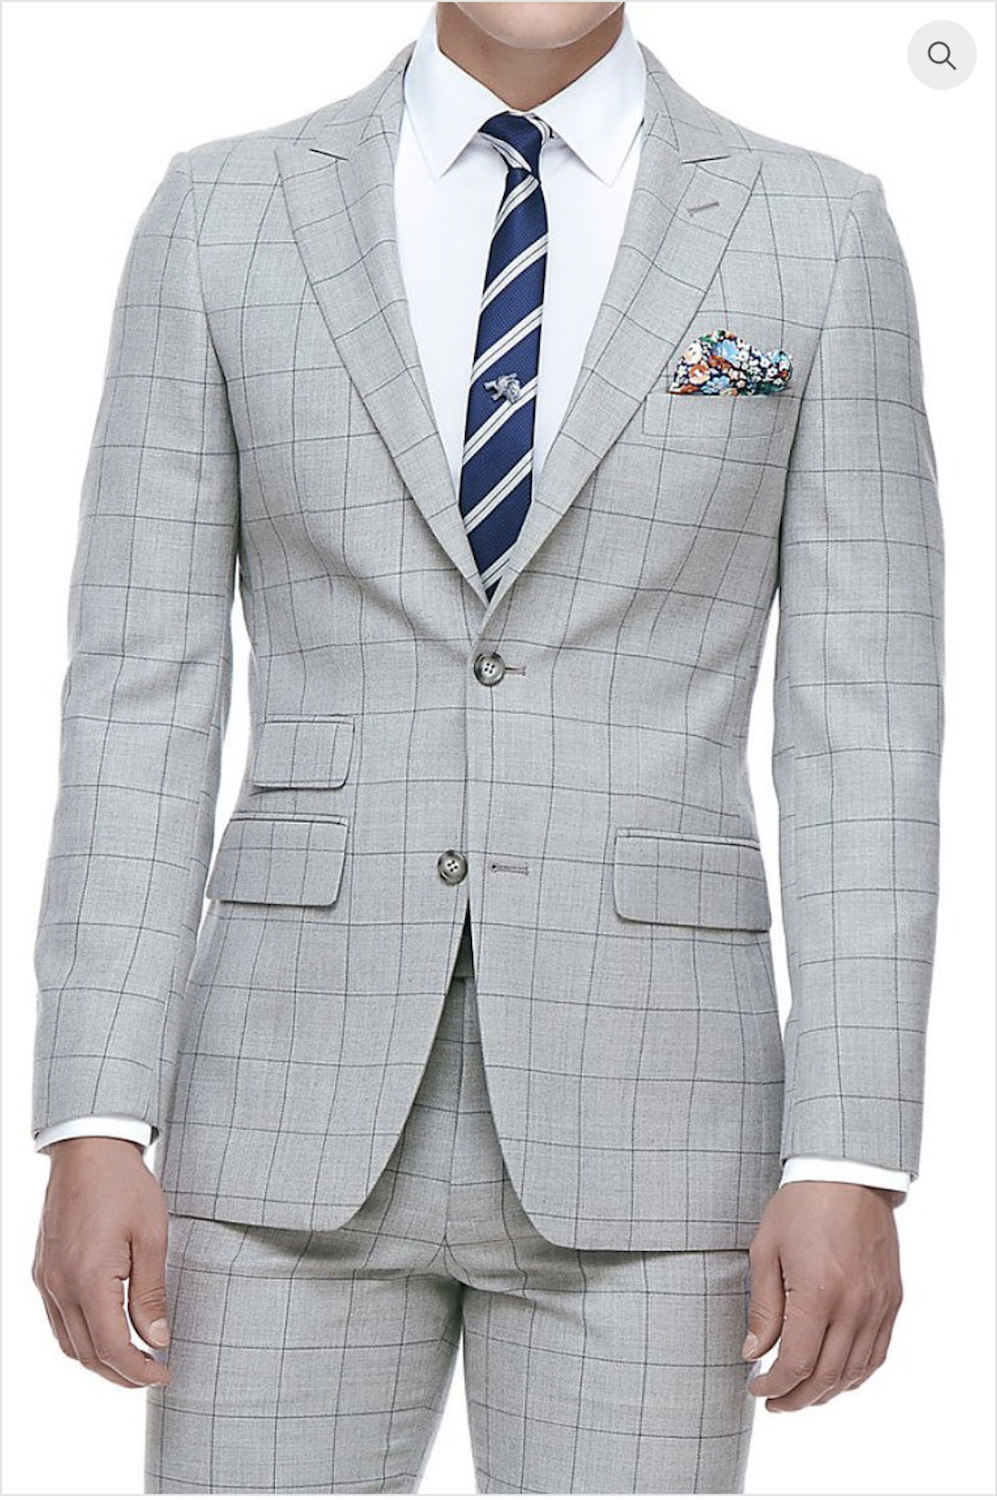 Daly Male Bell and Barnett Kayden Suit 1500pxl Height